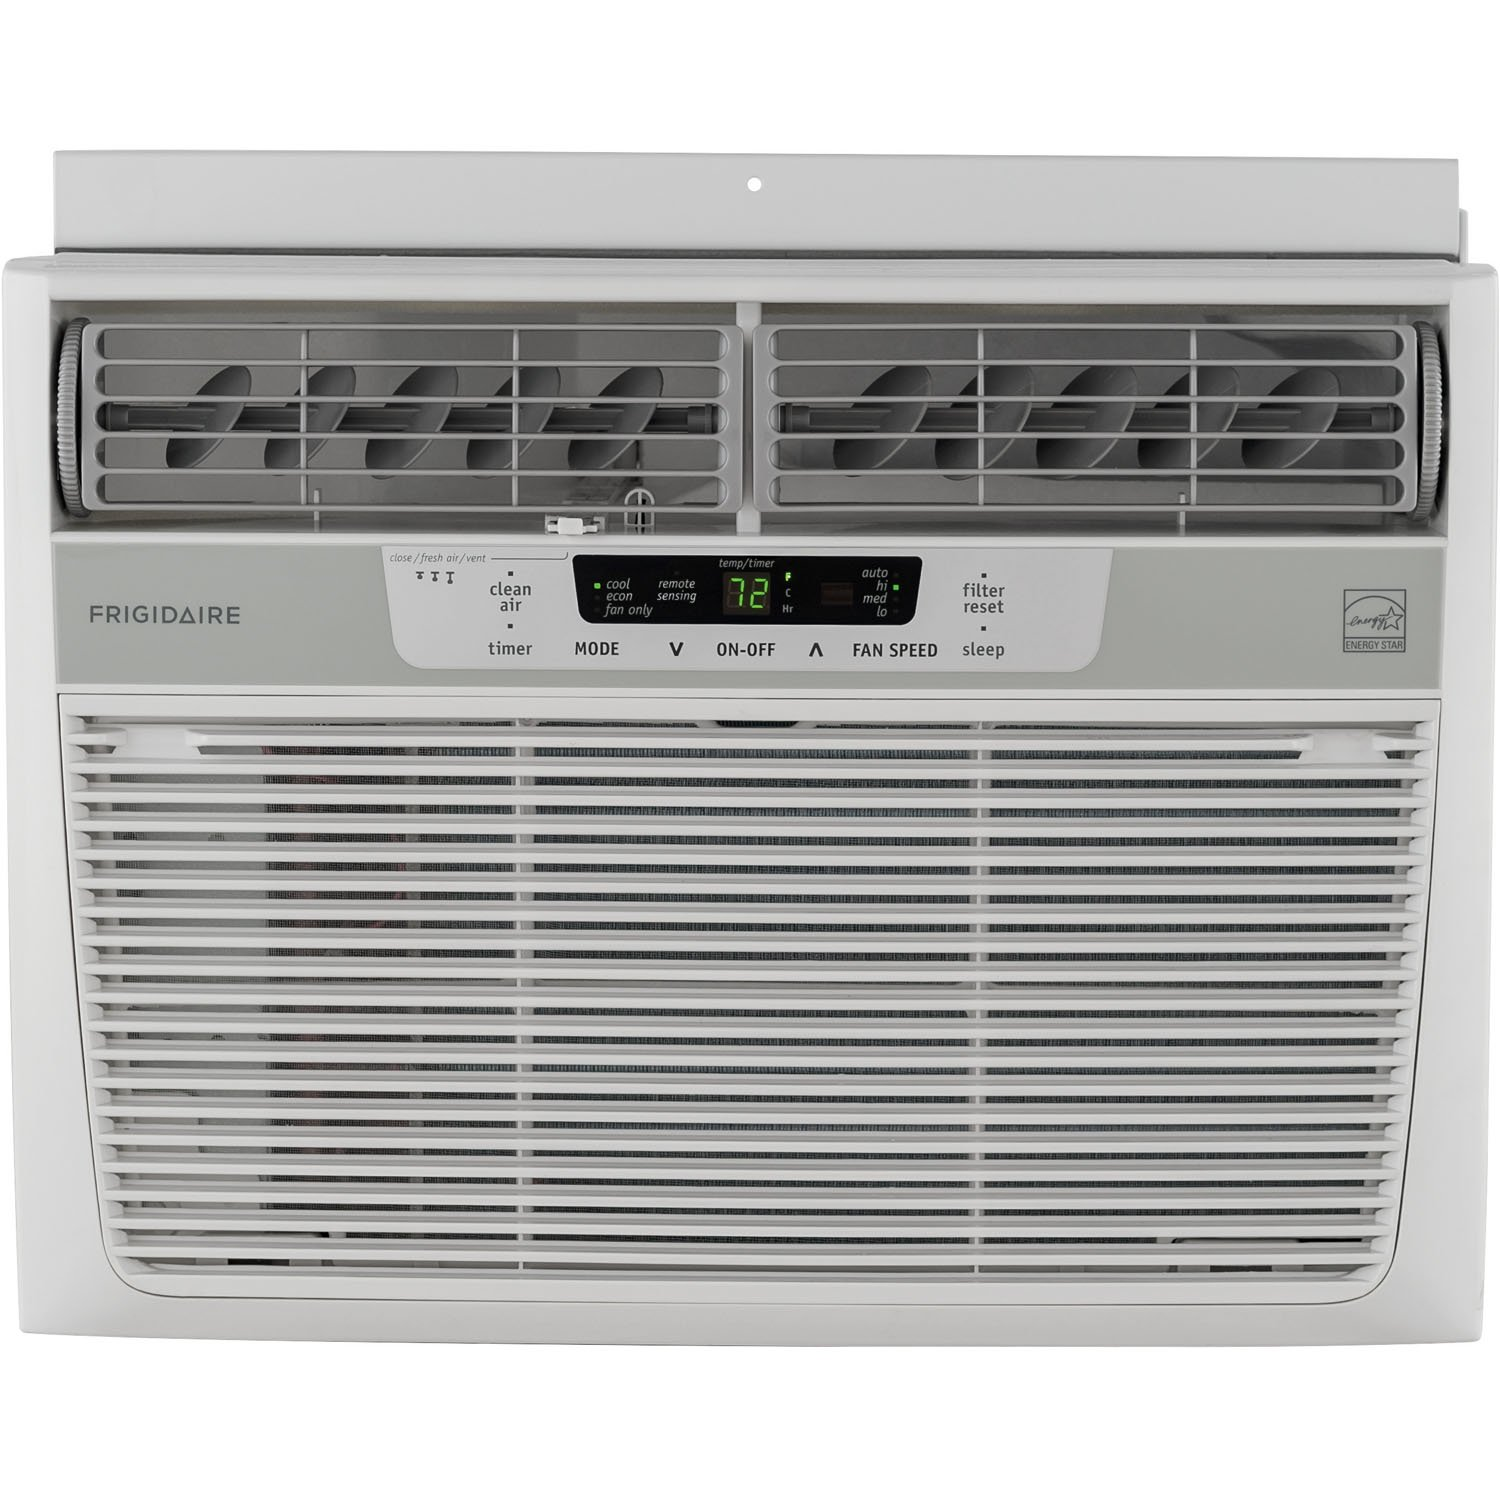 FFRE1033Q1 10 000 BTU 115V Window Mounted Compact Air Conditioner #4D6344